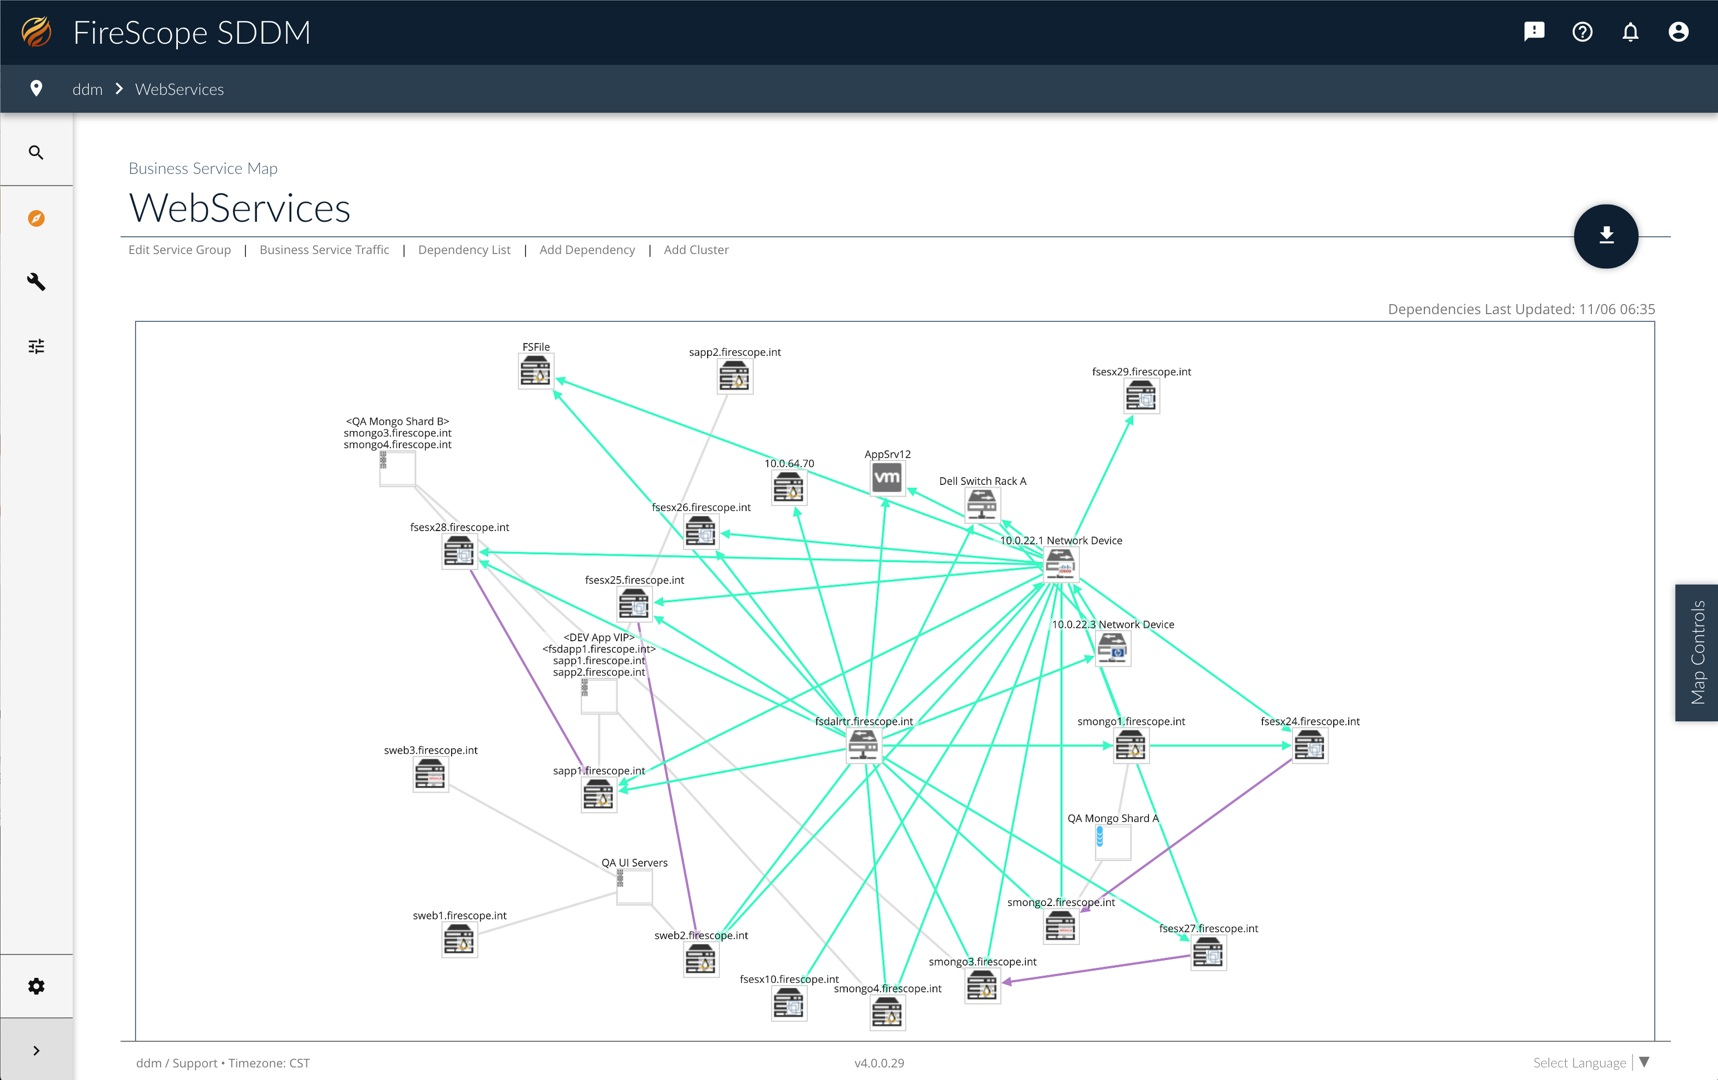 Secure Discovery and Dependency Mapping (SDDM) - Base Hosting incl  500 CIs